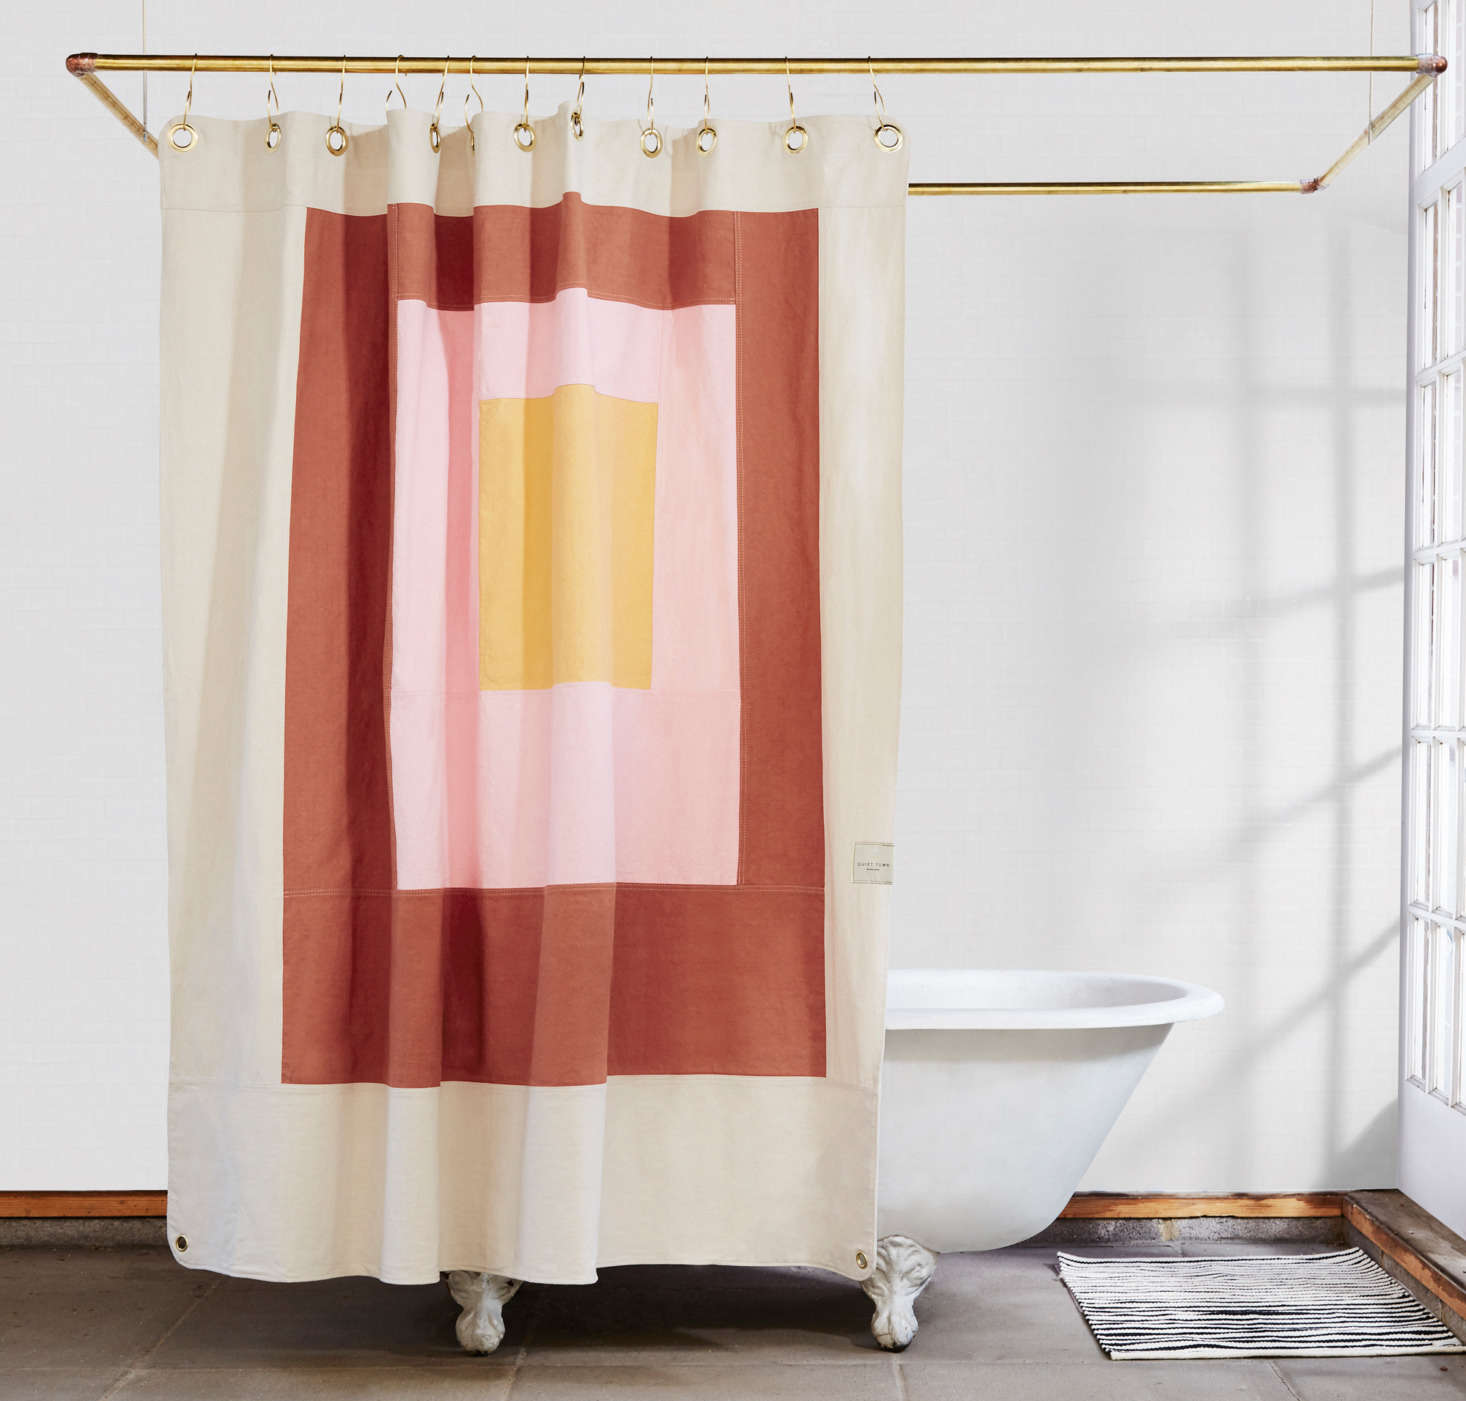 dsc luxury tsumi a weight of goods simple diy home interior curtains curtain copy awesome from design